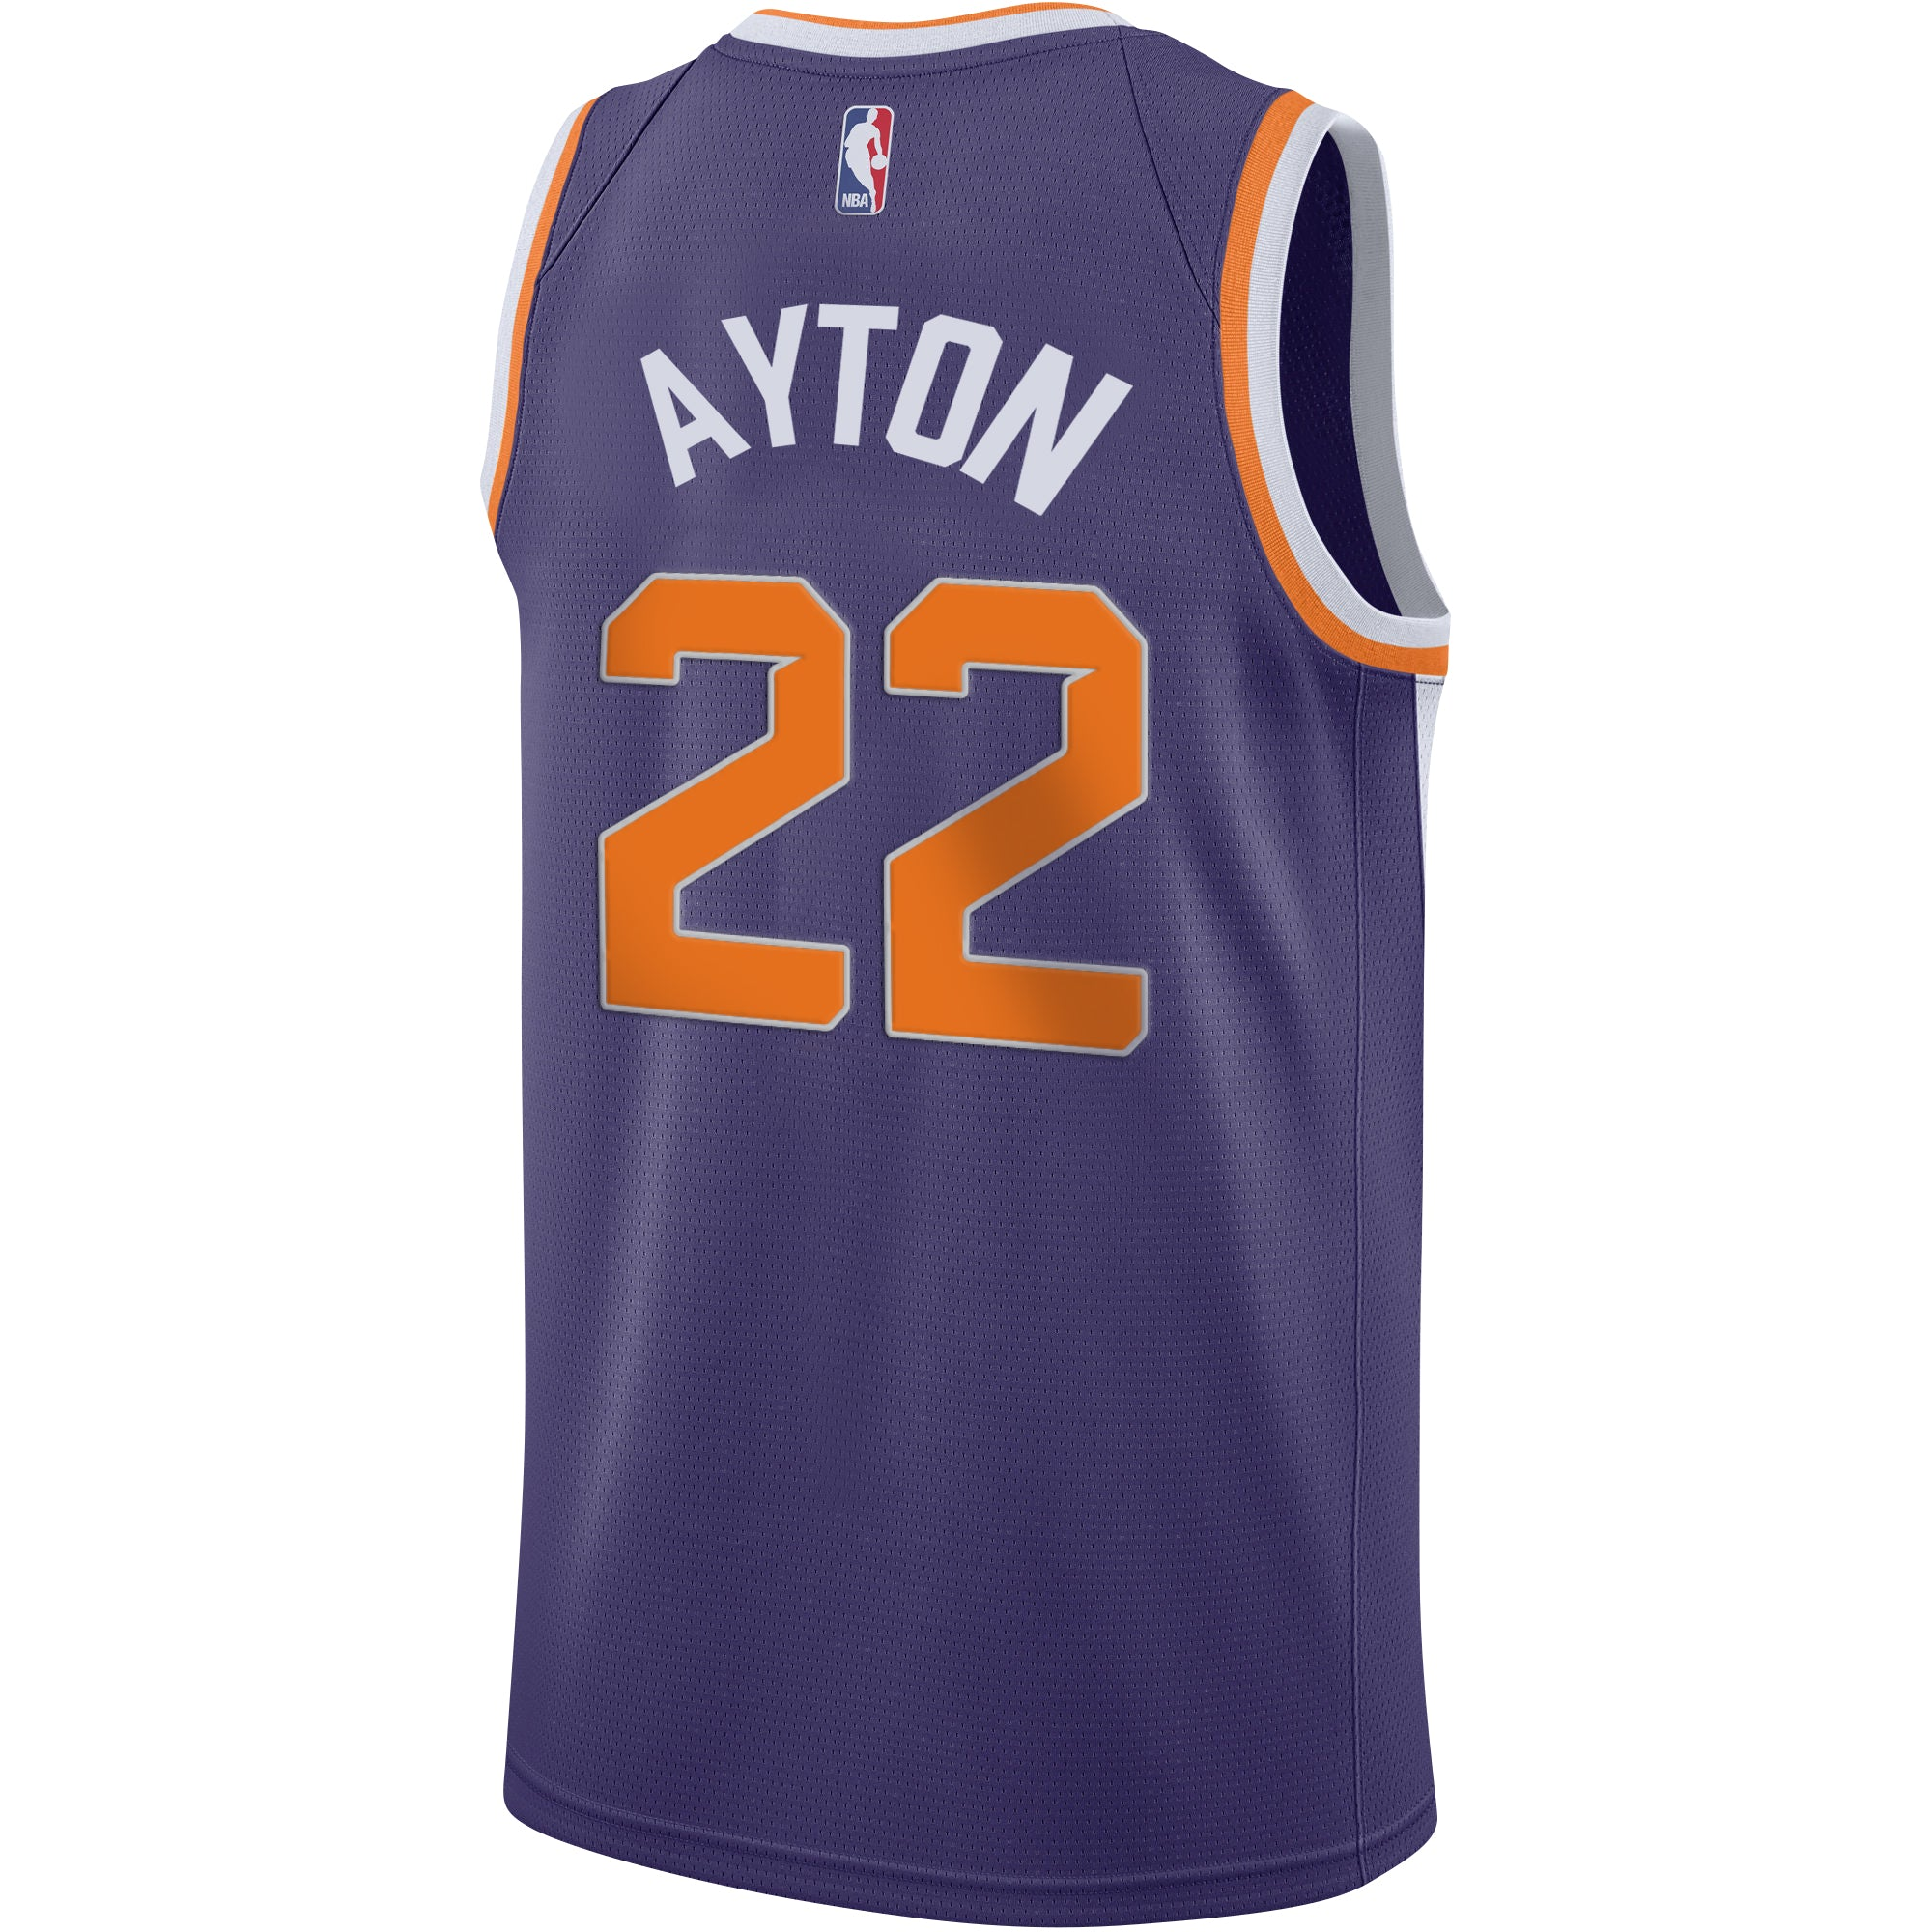 79f3324e444 ... purple jersey 94b4d 0bd97 australia nba phoenix suns deandre ayton nike  youth swingman jersey icon edition 18821 f4031 clearance youth mikal bridges  ...